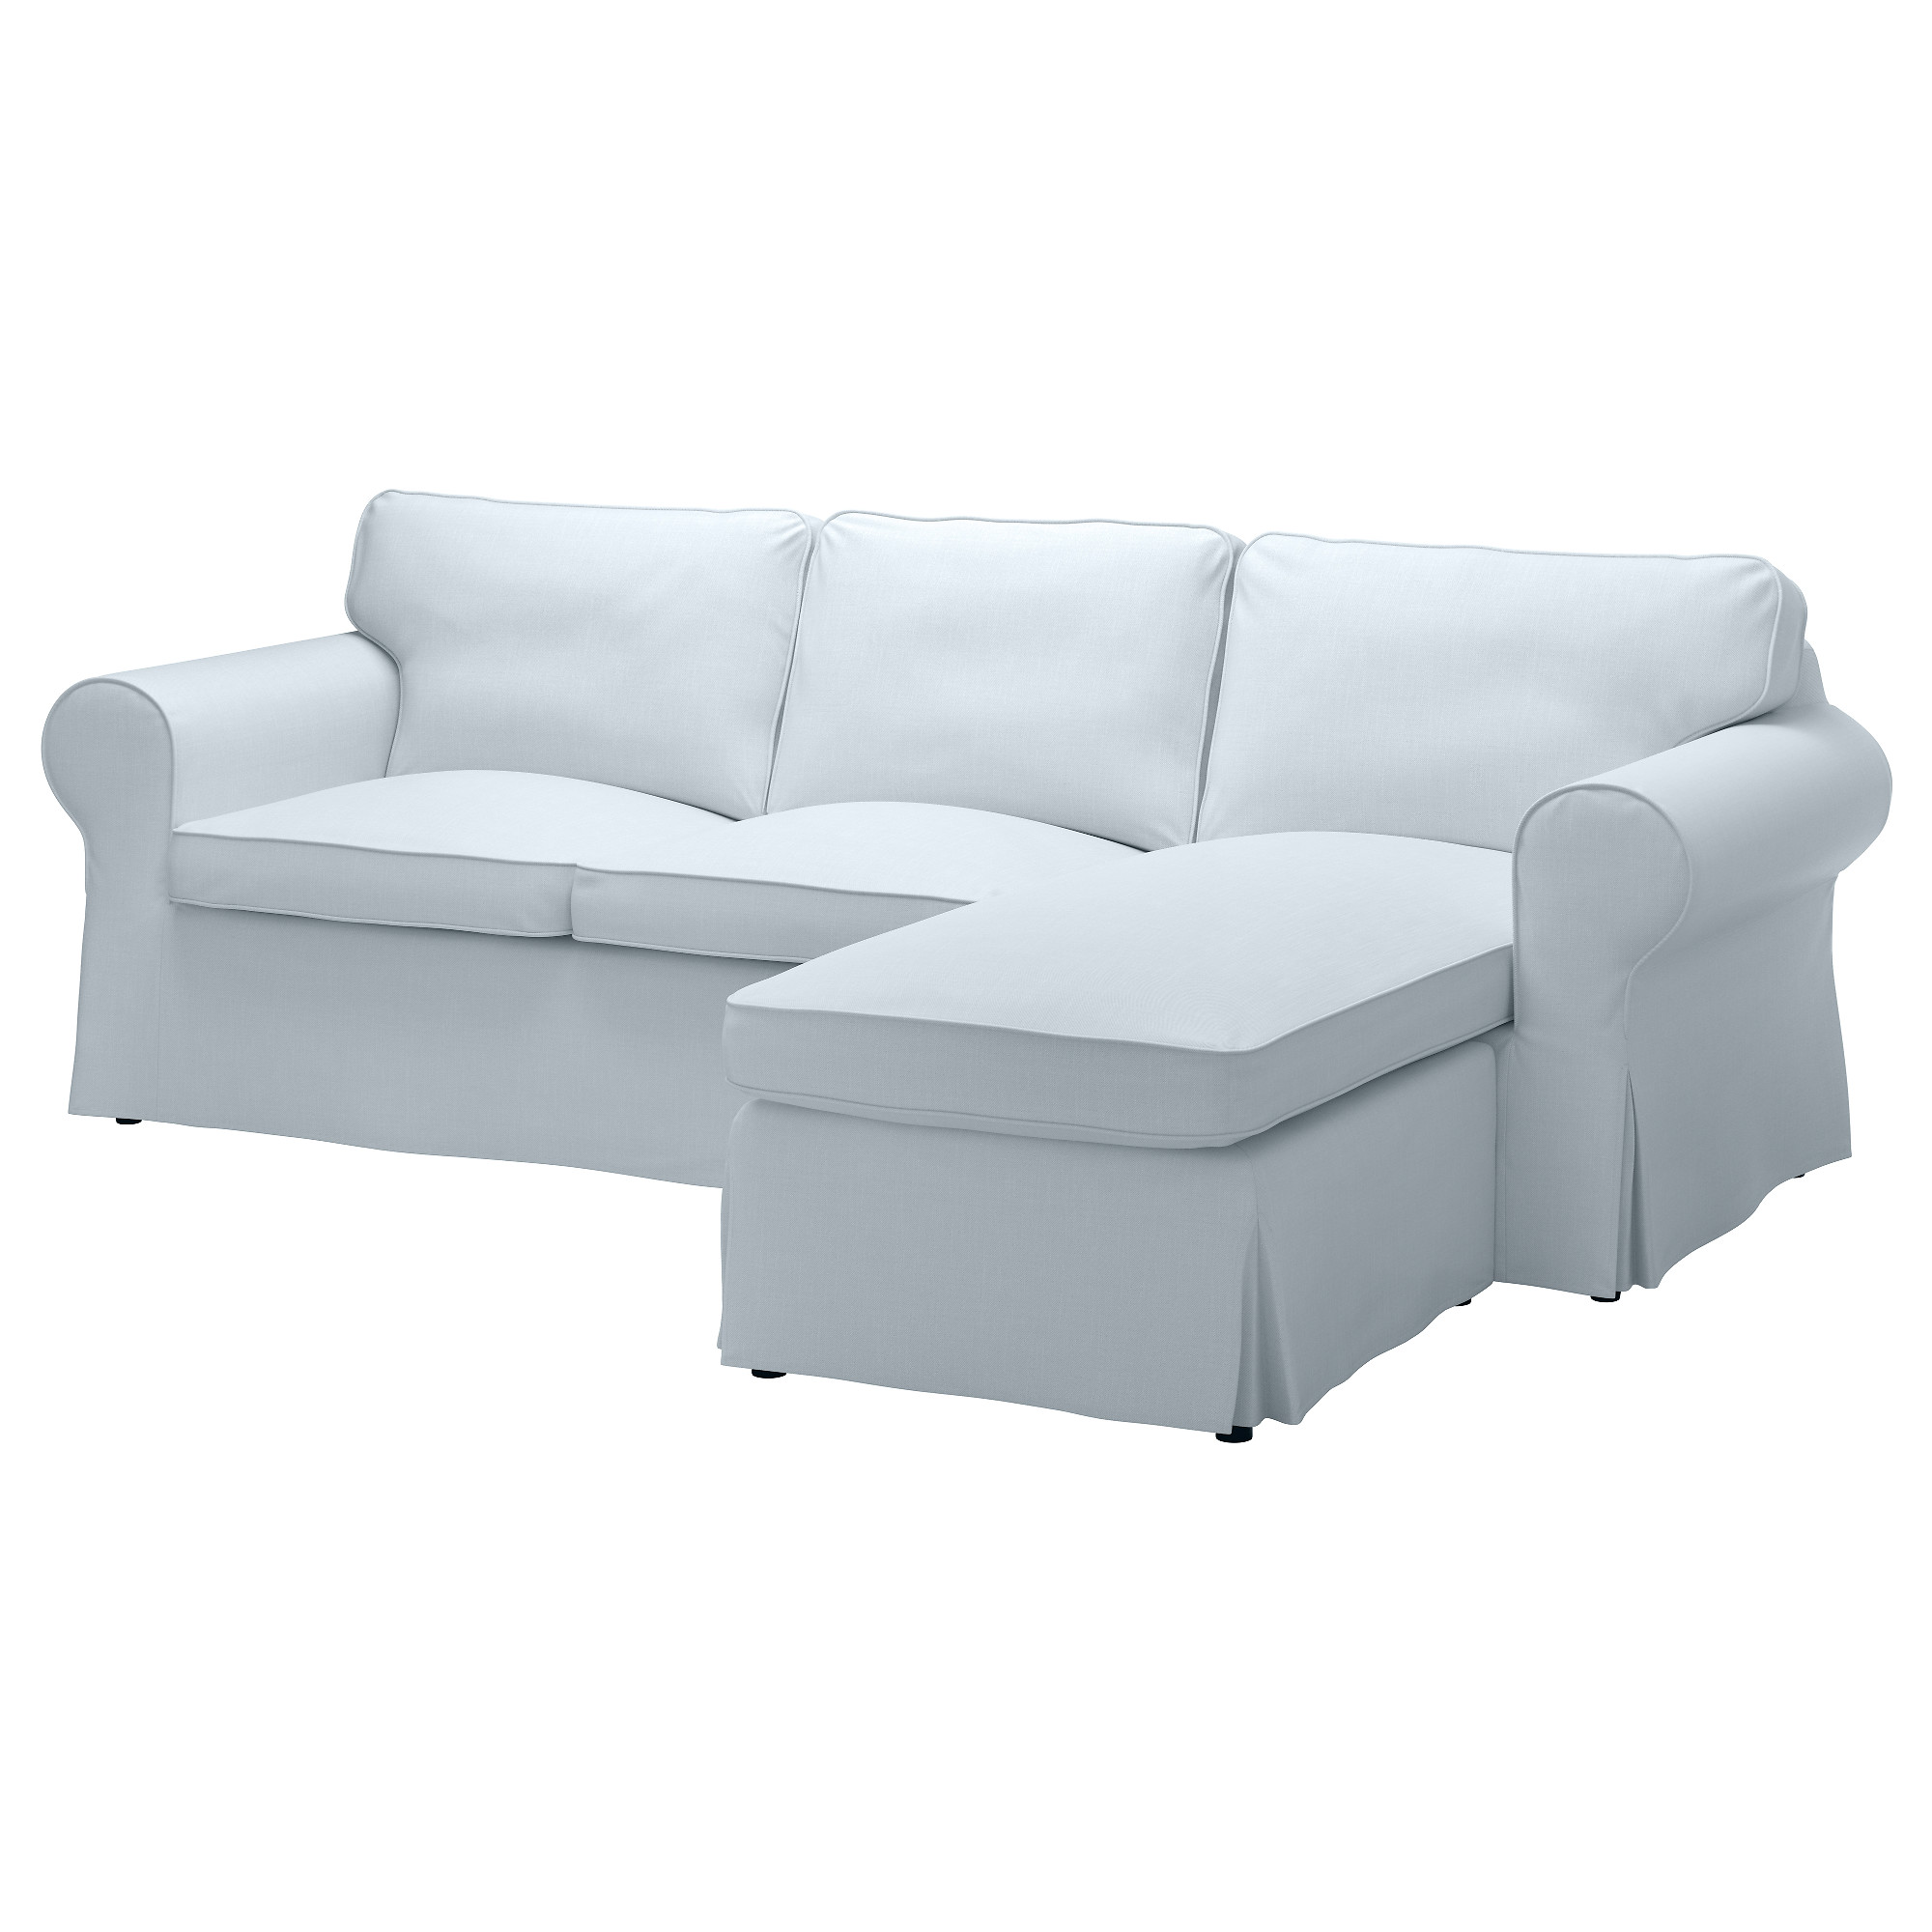 EKTORP Sofa   With Chaise/Lofallet Beige   IKEA Part 15